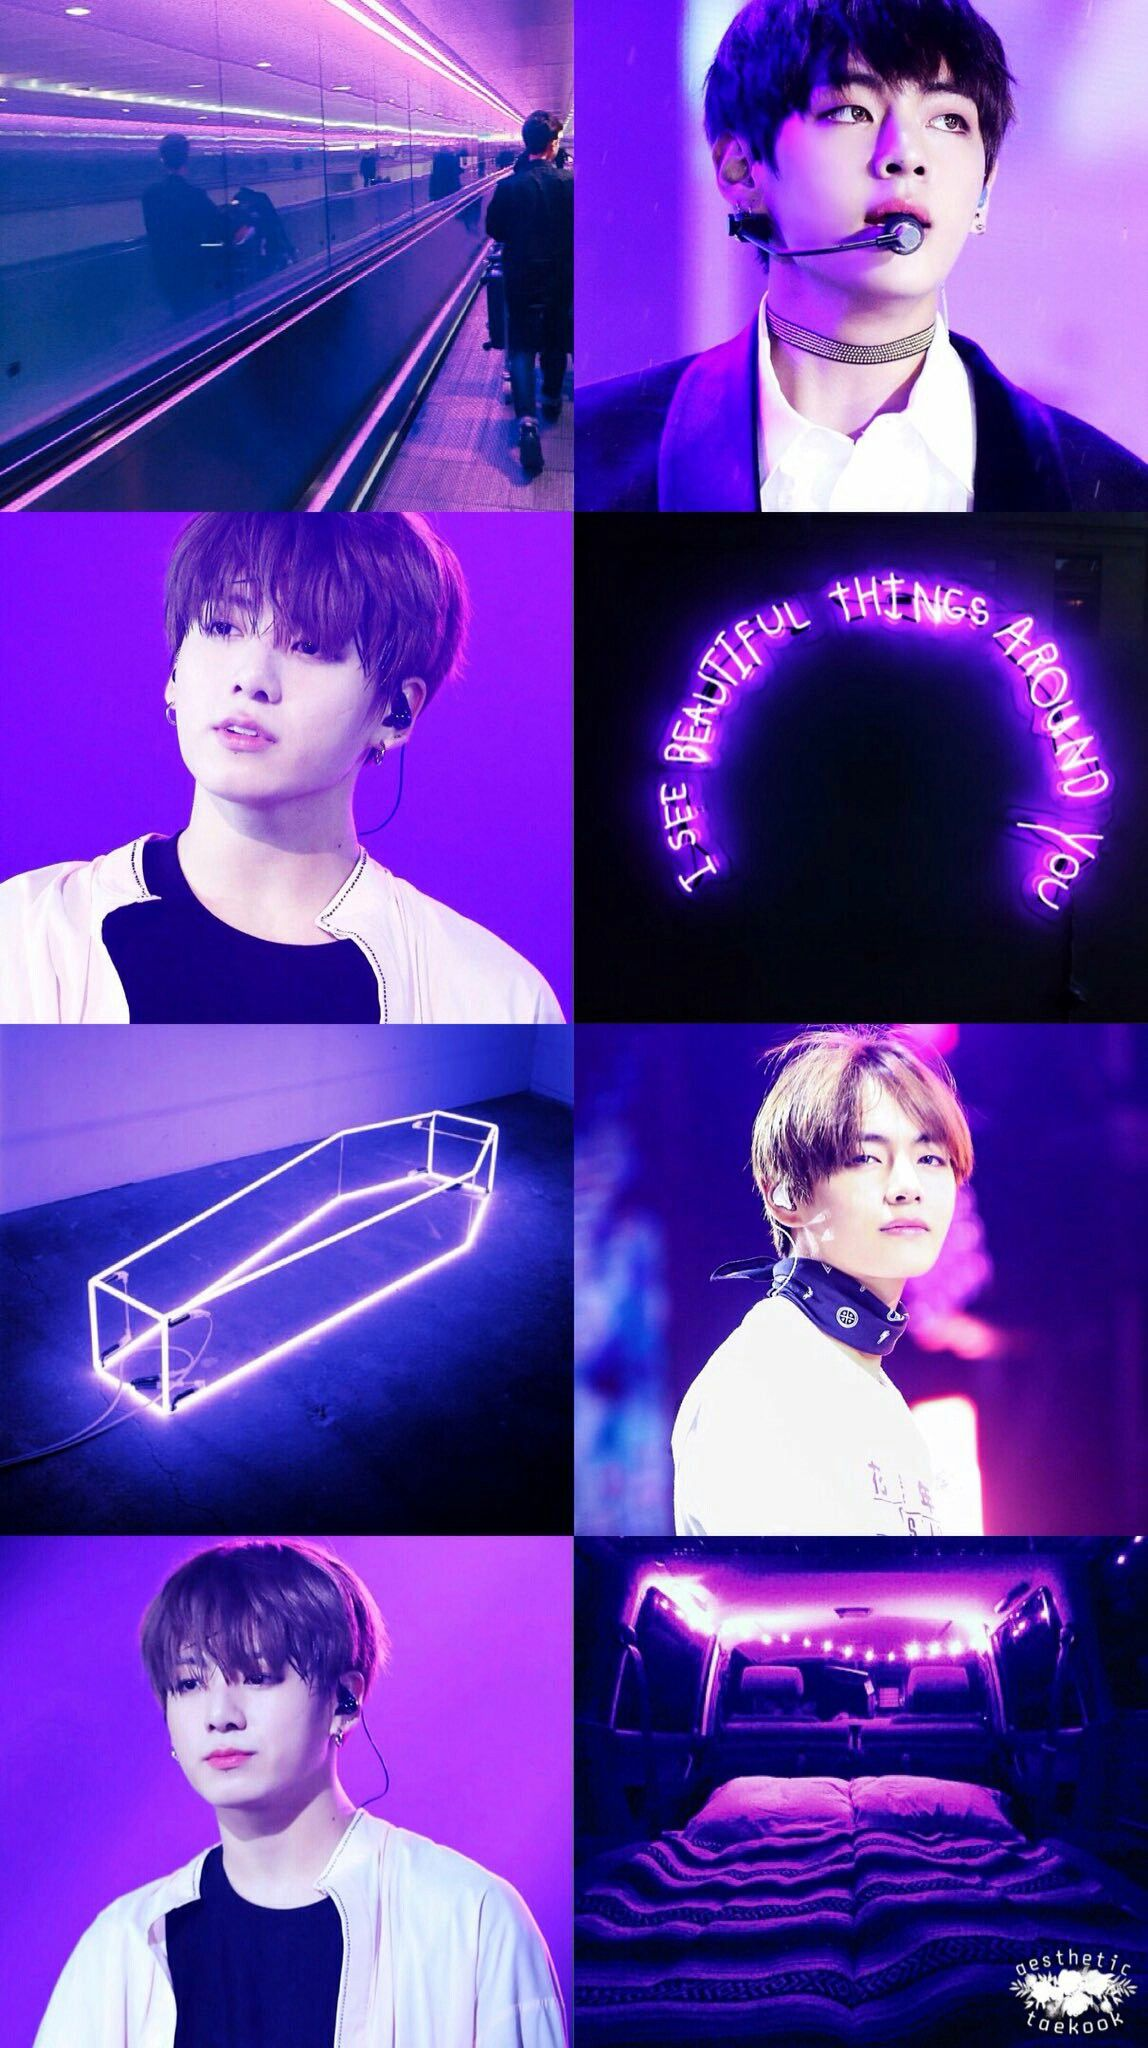 Aesthetic Lockscreen Wallpaper Asthetic Taekook By Ladybug Wallpaper Ponsel